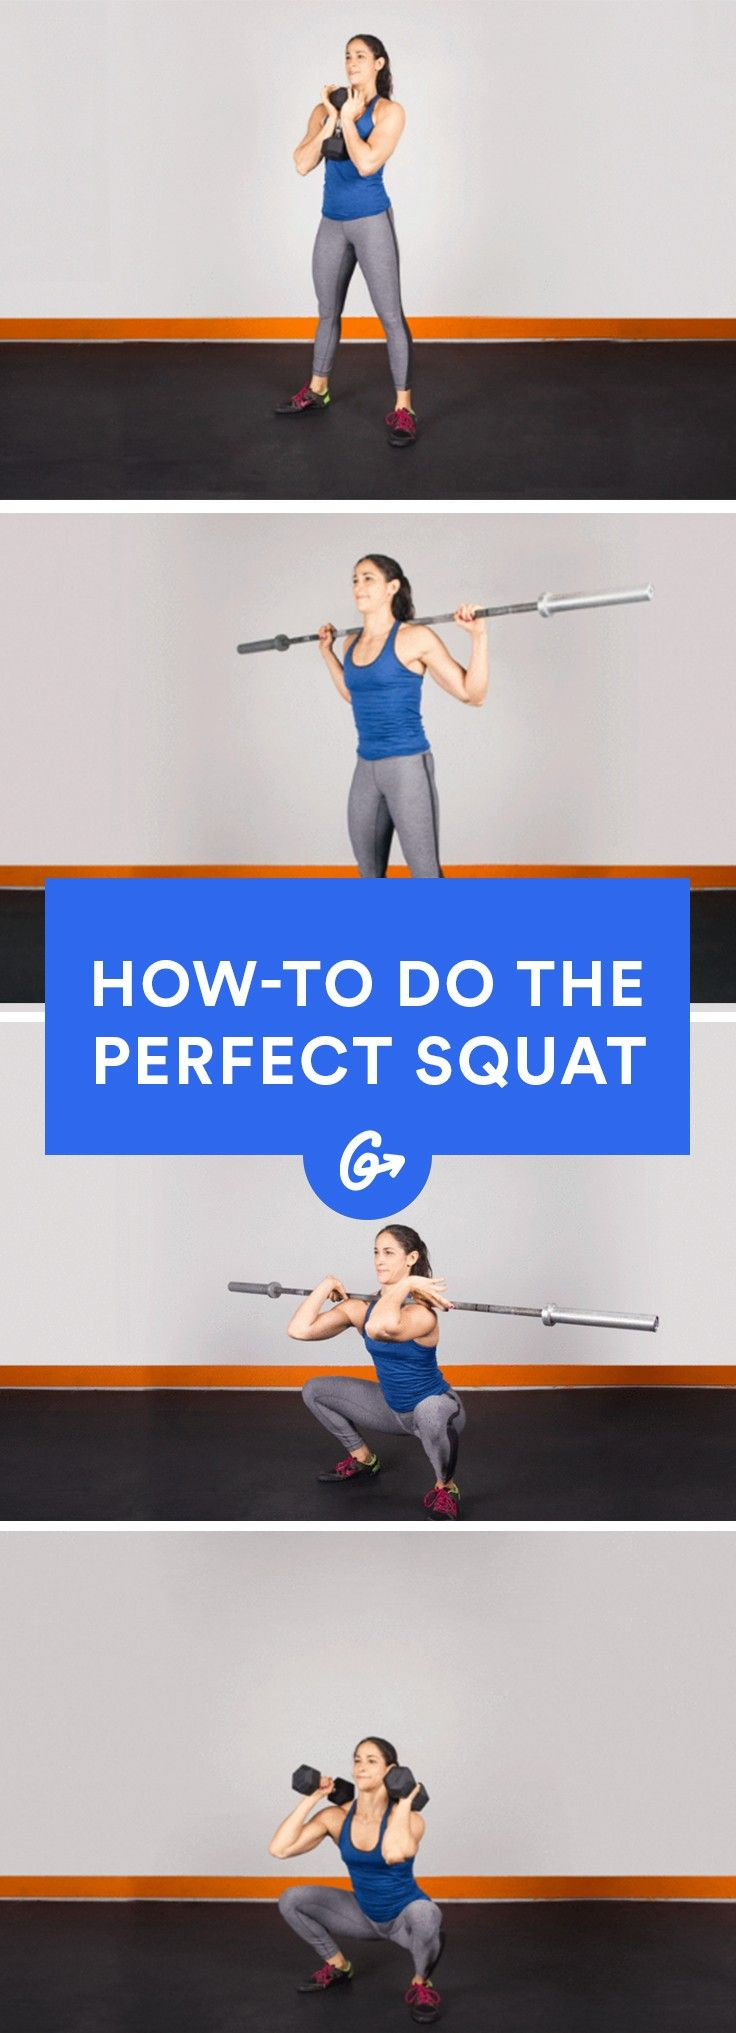 Perfect Squat Form in 7 Steps Perfect squat, Workout